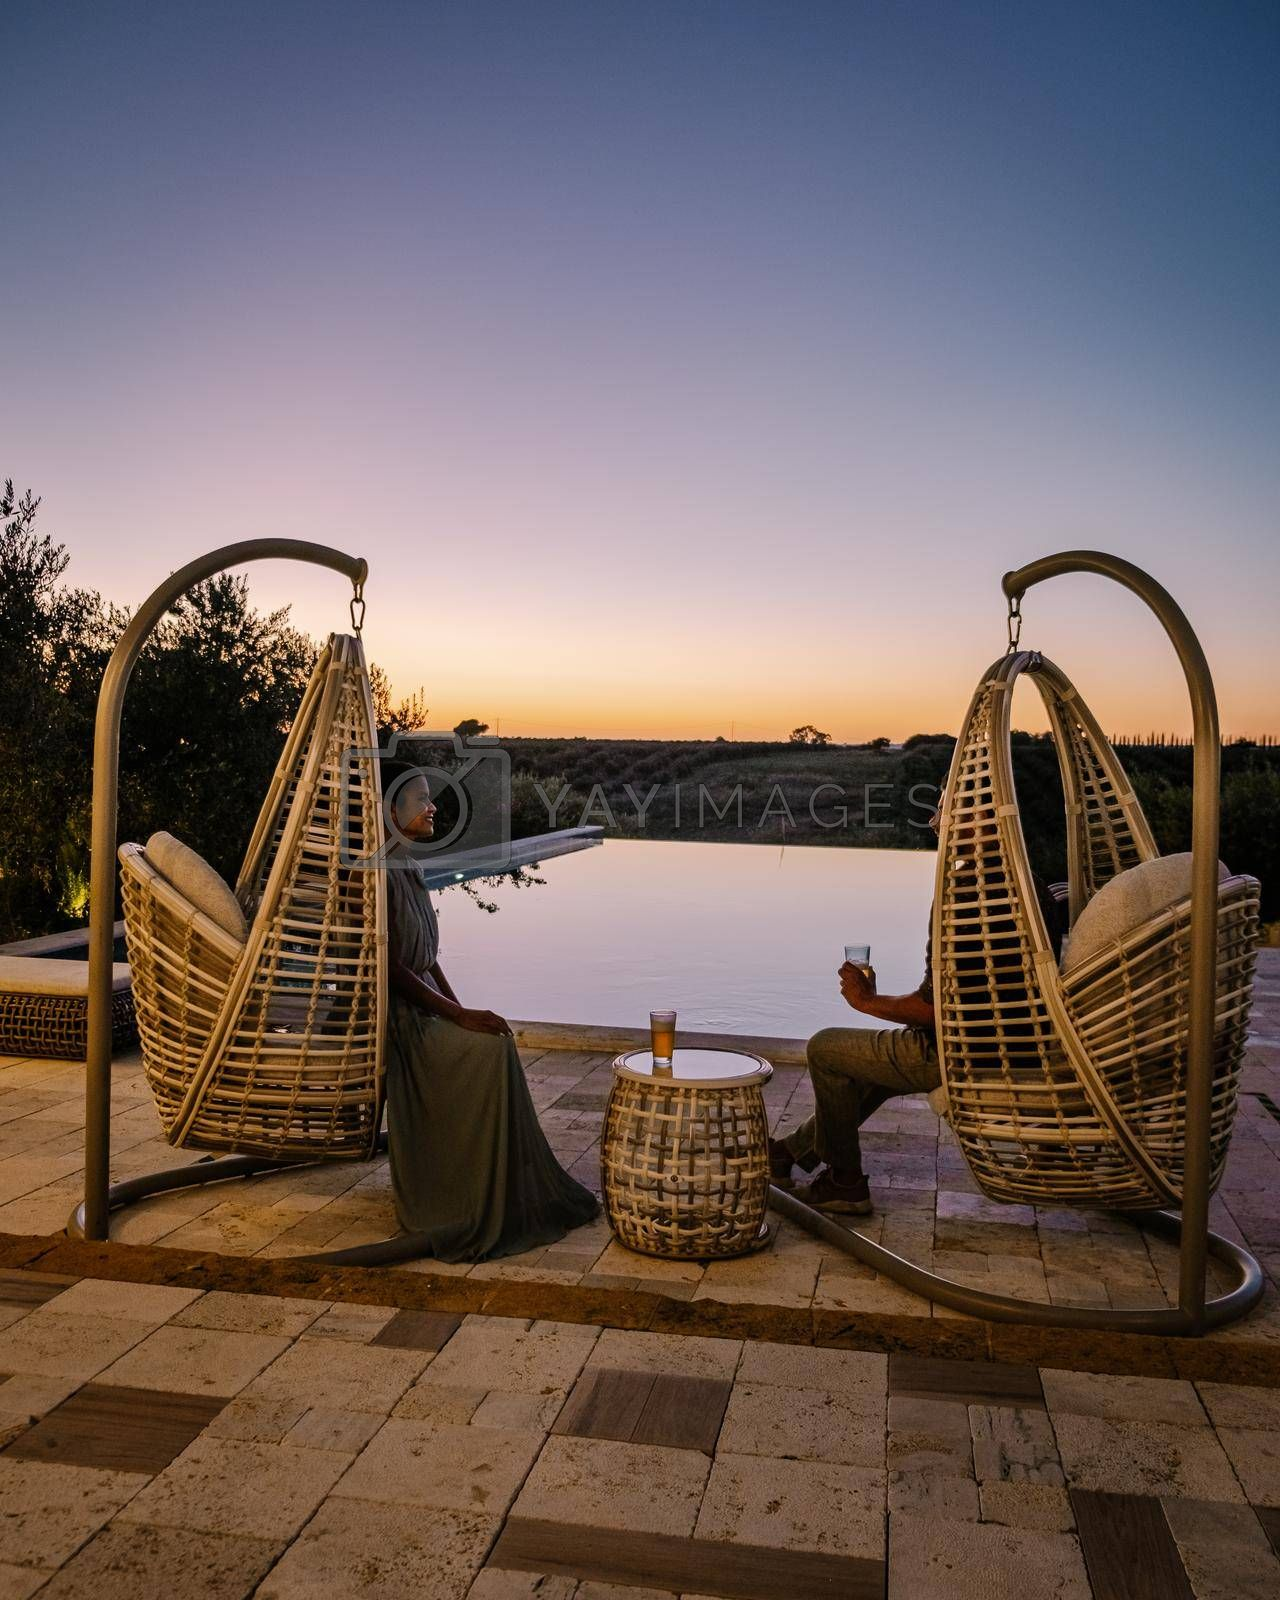 Luxury resort with a view over the wine field in Selinunte Sicily Italy. infinity pool with a view over wine fields in Sicilia, couple on vacation at luxury resort